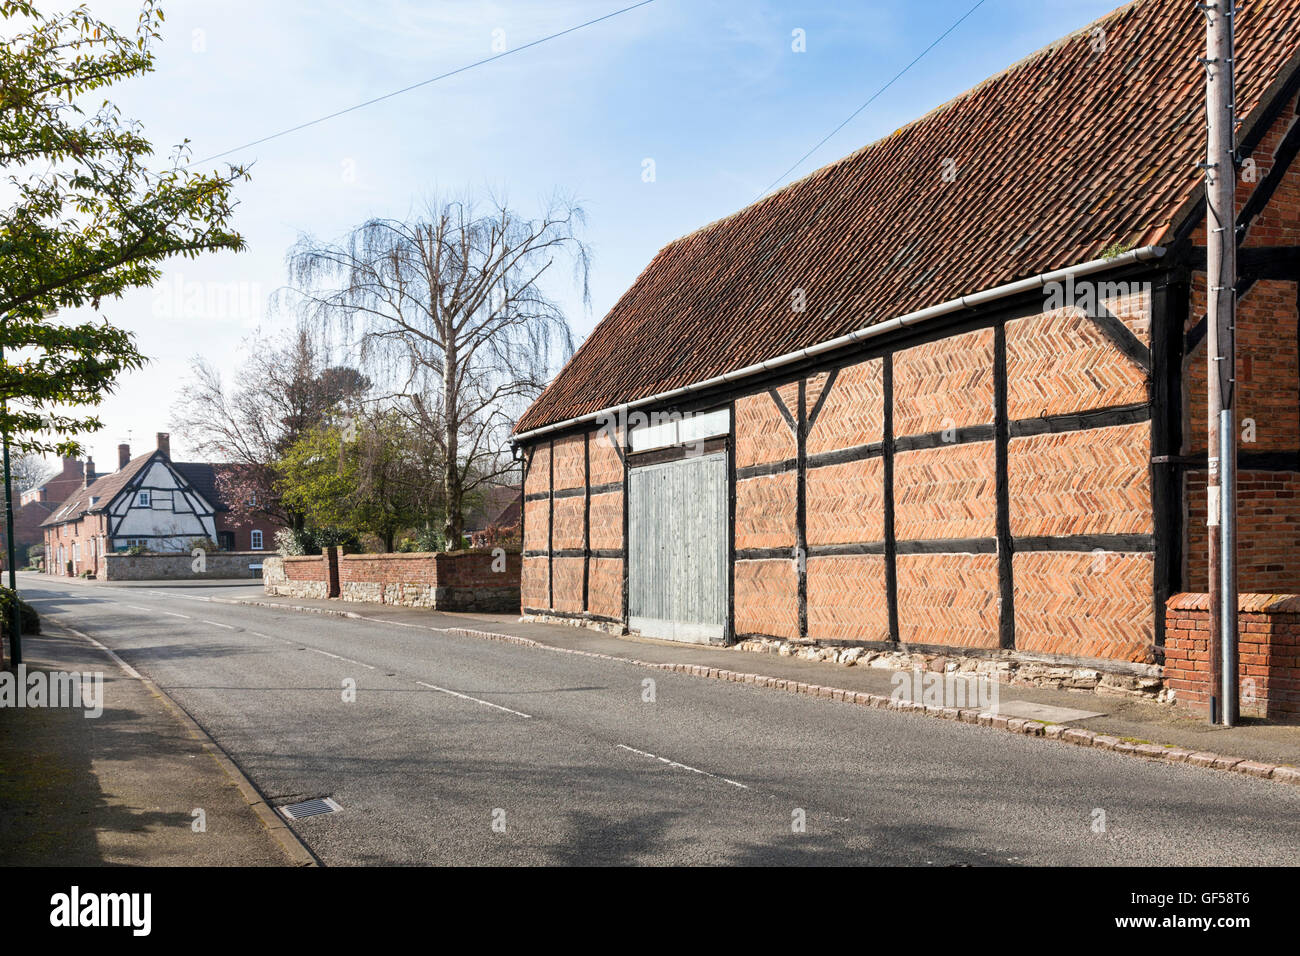 Old timber framed building with herringbone brickwork in the village of Hoton, Leicestershire, England, UK - Stock Image